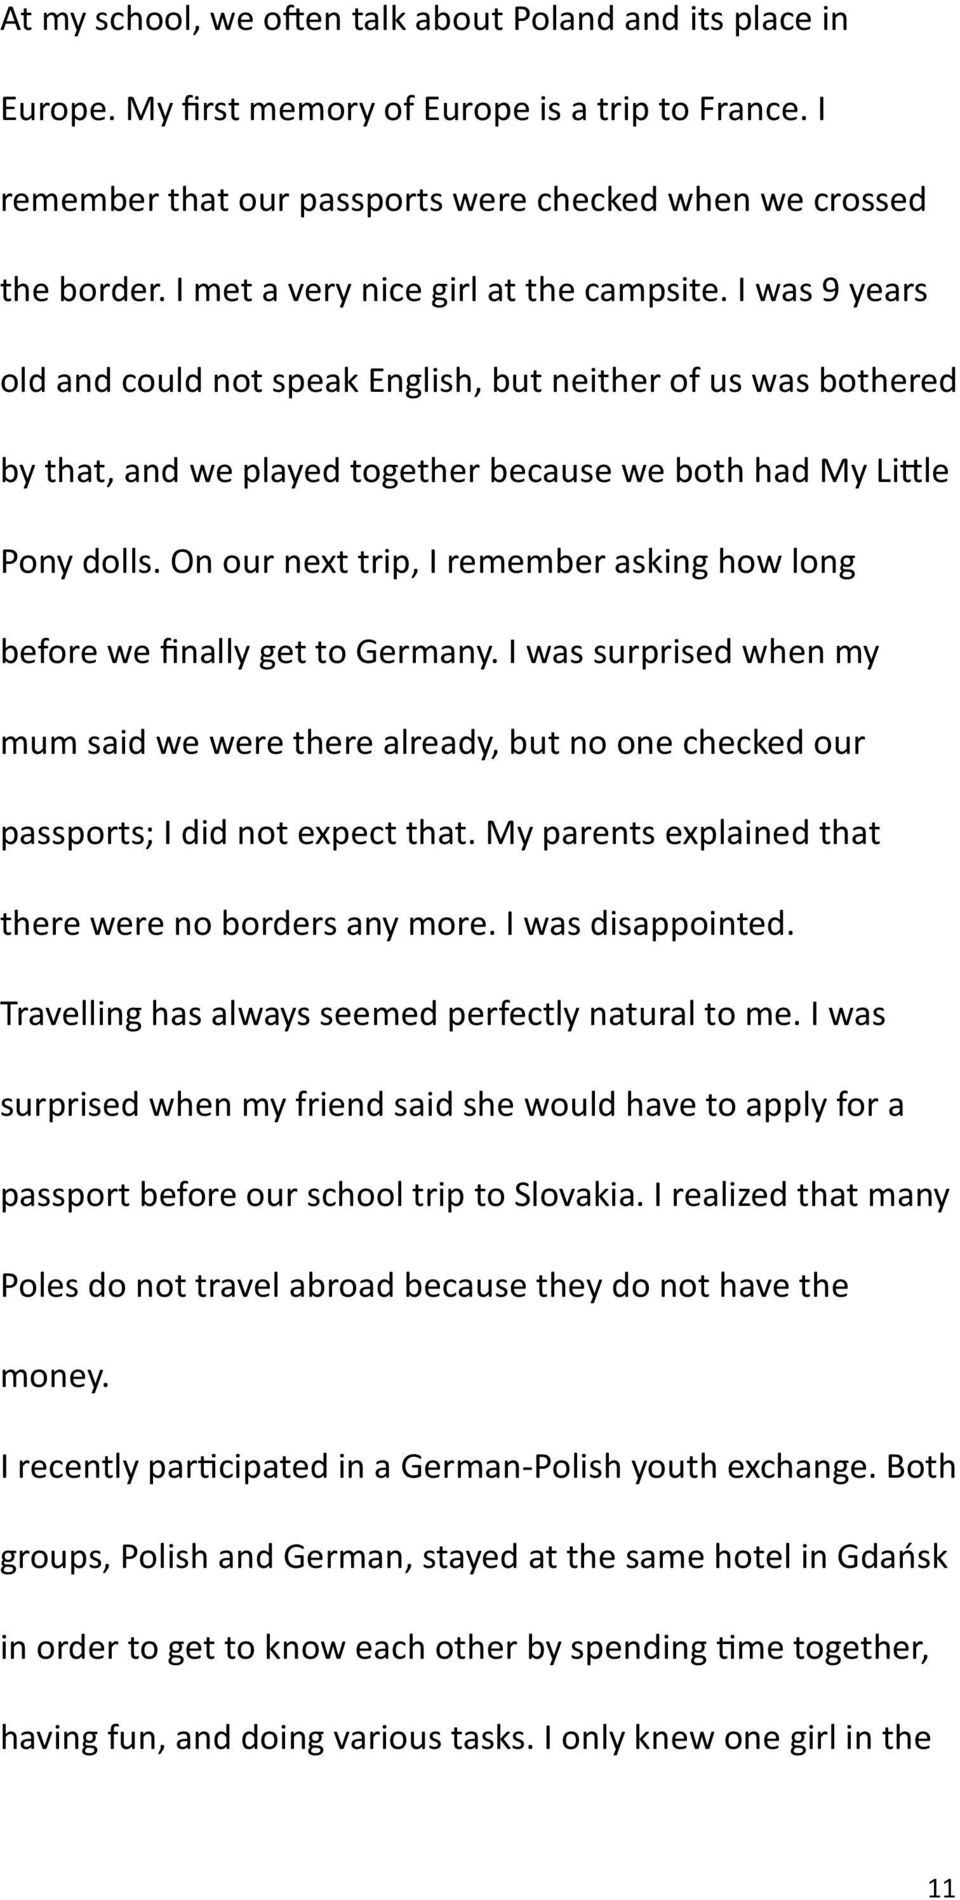 On our next trip, I remember asking how long before we finally get to Germany. I was surprised when my mum said we were there already, but no one checked our passports; I did not expect that.